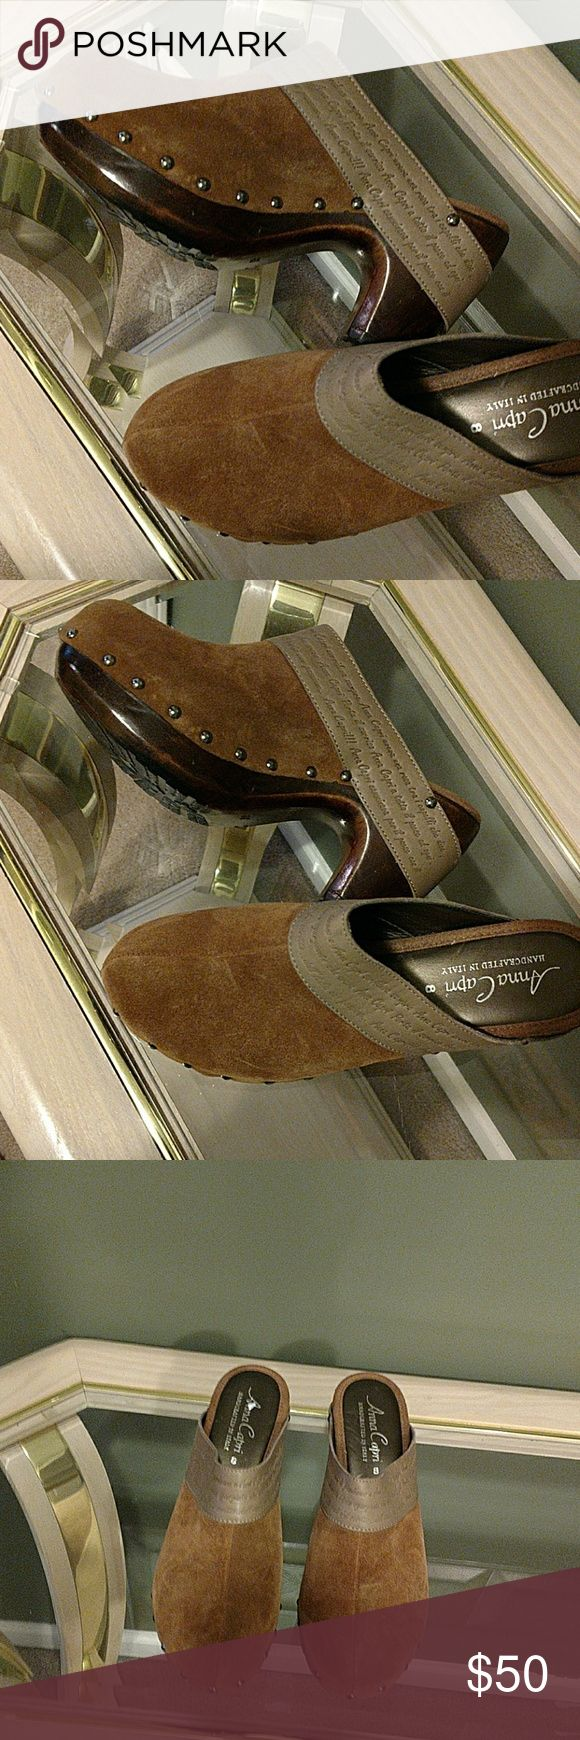 ANNA CAPRI CLOGS HANDCRAFTED IN ITALY Annac Capri Handcrafted in Italy Clogs. Suede and leather clogs with studs around the front to the back with a strap that hangs on the heel.  NWOT anna capri Shoes Mules & Clogs